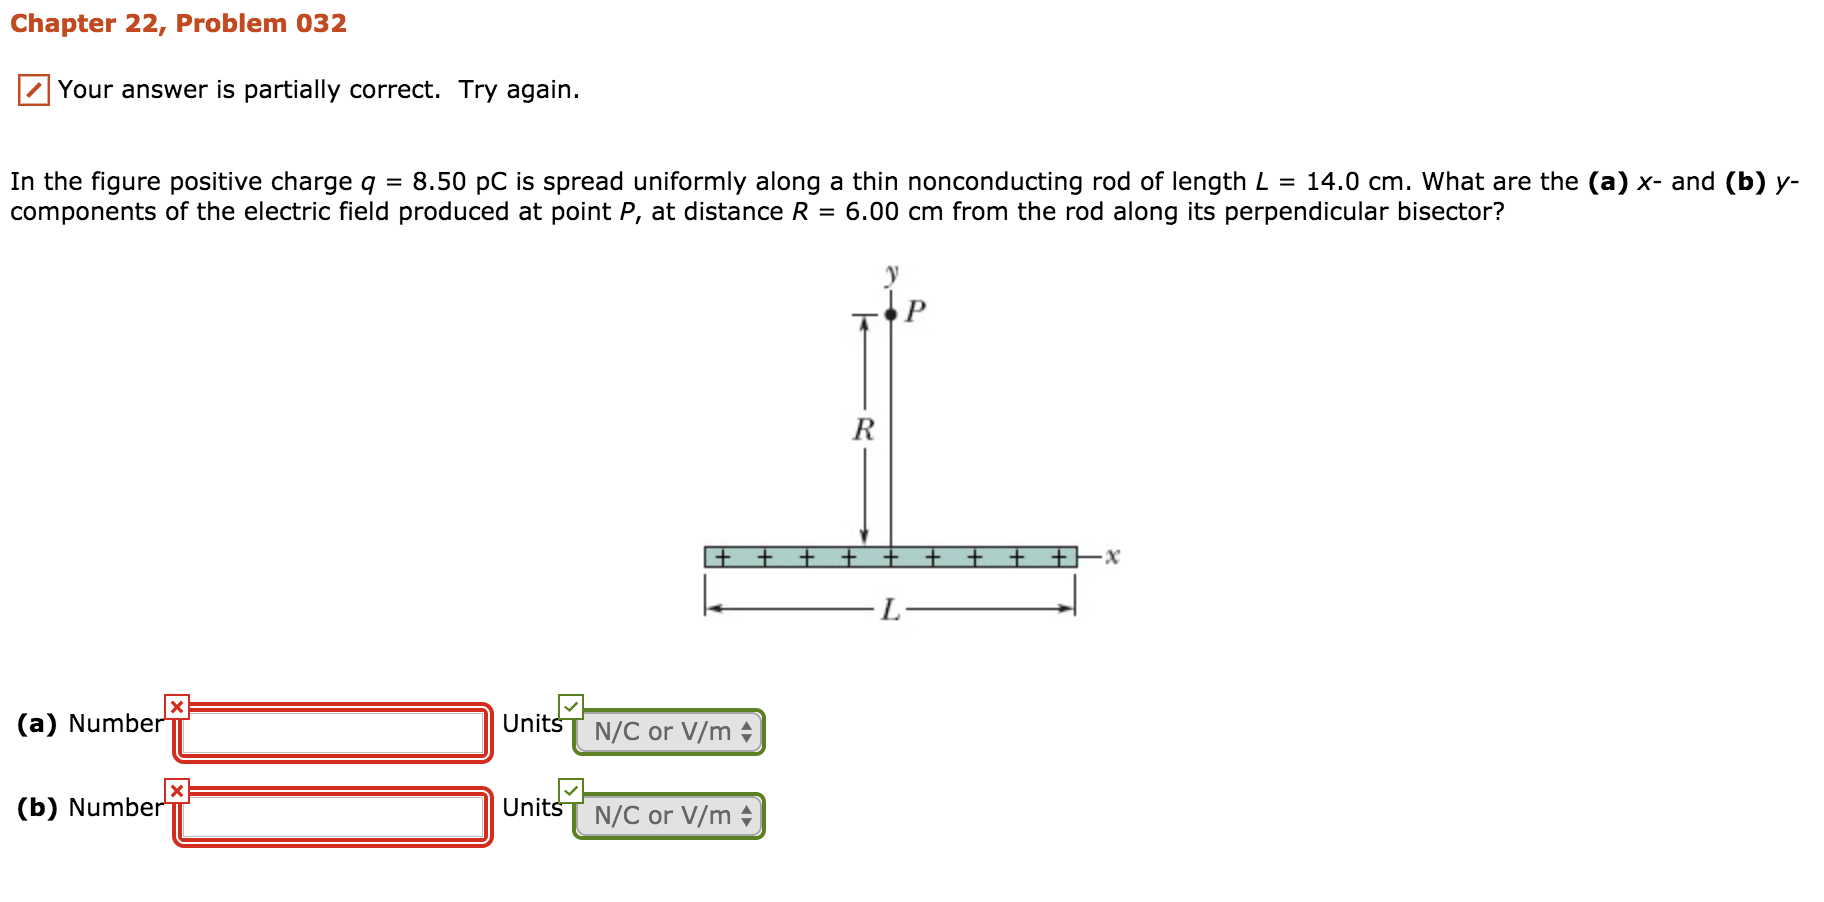 Chapter 22, Problem 032 Your answer is partially correct. Try again. In the figure positive charge q = 8.50 pC is spread uniformly along a thin nonconducting rod of length L 14.0 cm, what are the (a) x-and (b) y- components of the electric field produced at point P, at distance R = 6.00 cm from the rod along its perpendicular bisector? Units (a) Number N/C or V/m UnitsT N/C or V/m